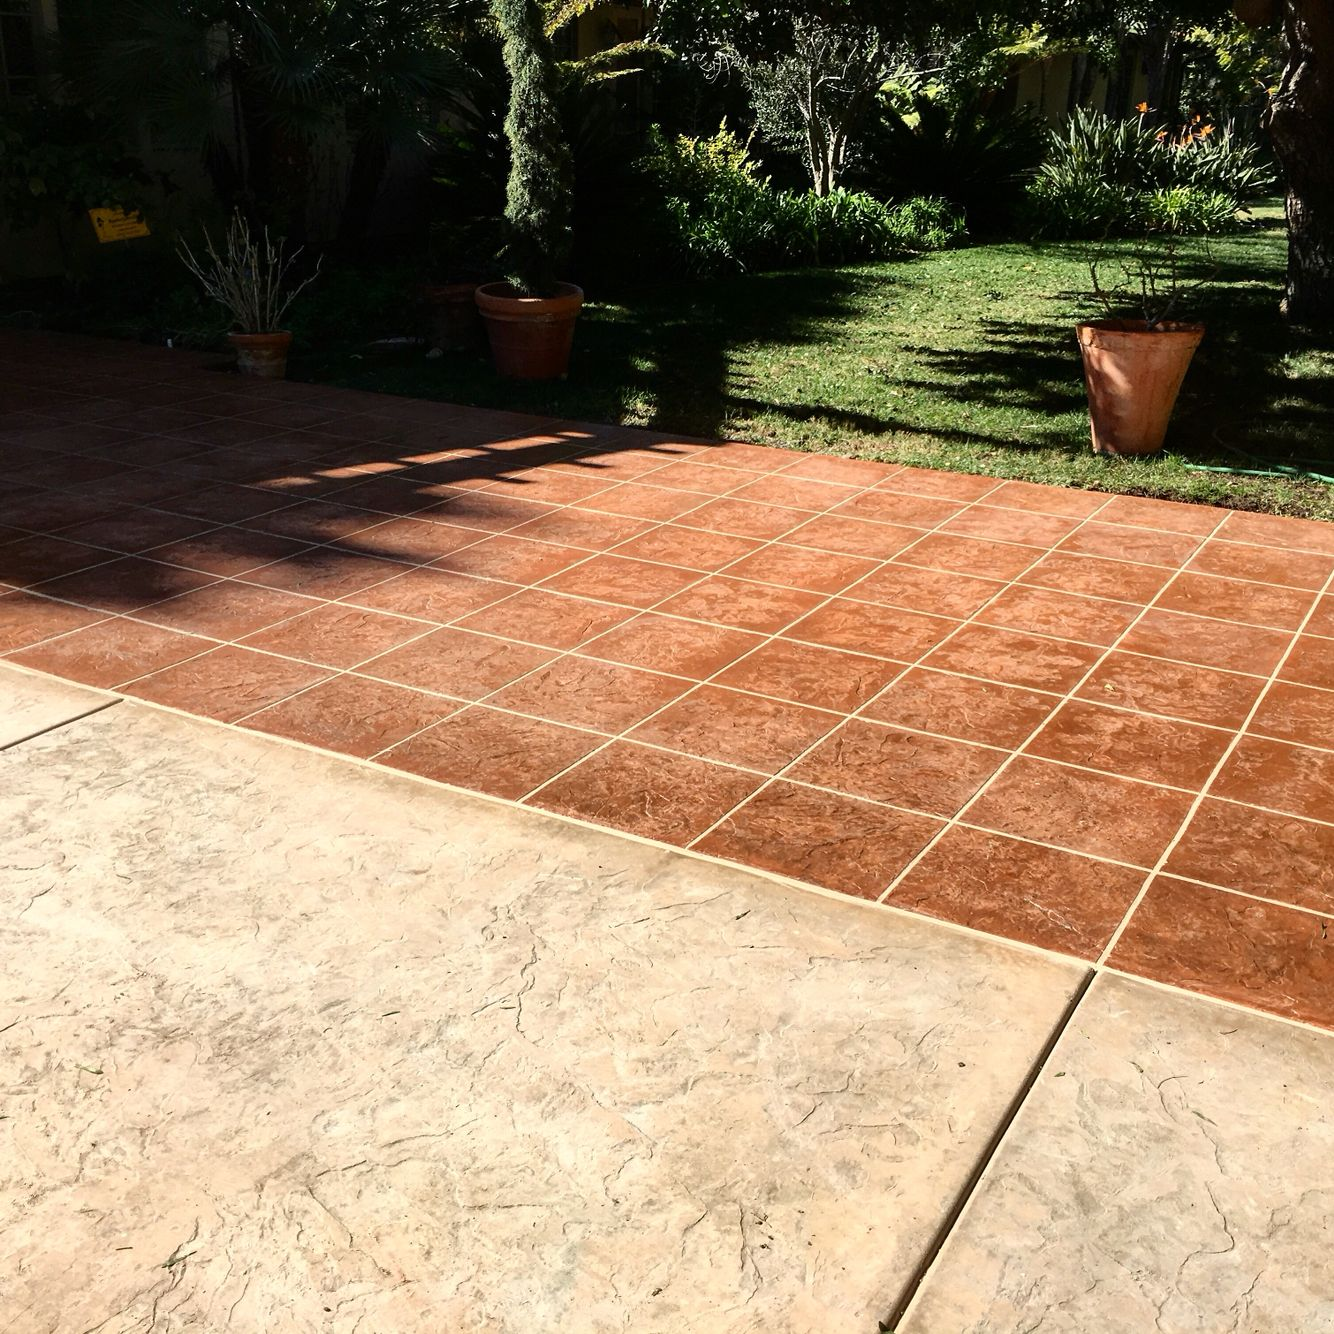 Custom Stamped Concrete Driveway And Entry Cut And Grouted To Look Like  Spanish Tile. Davis